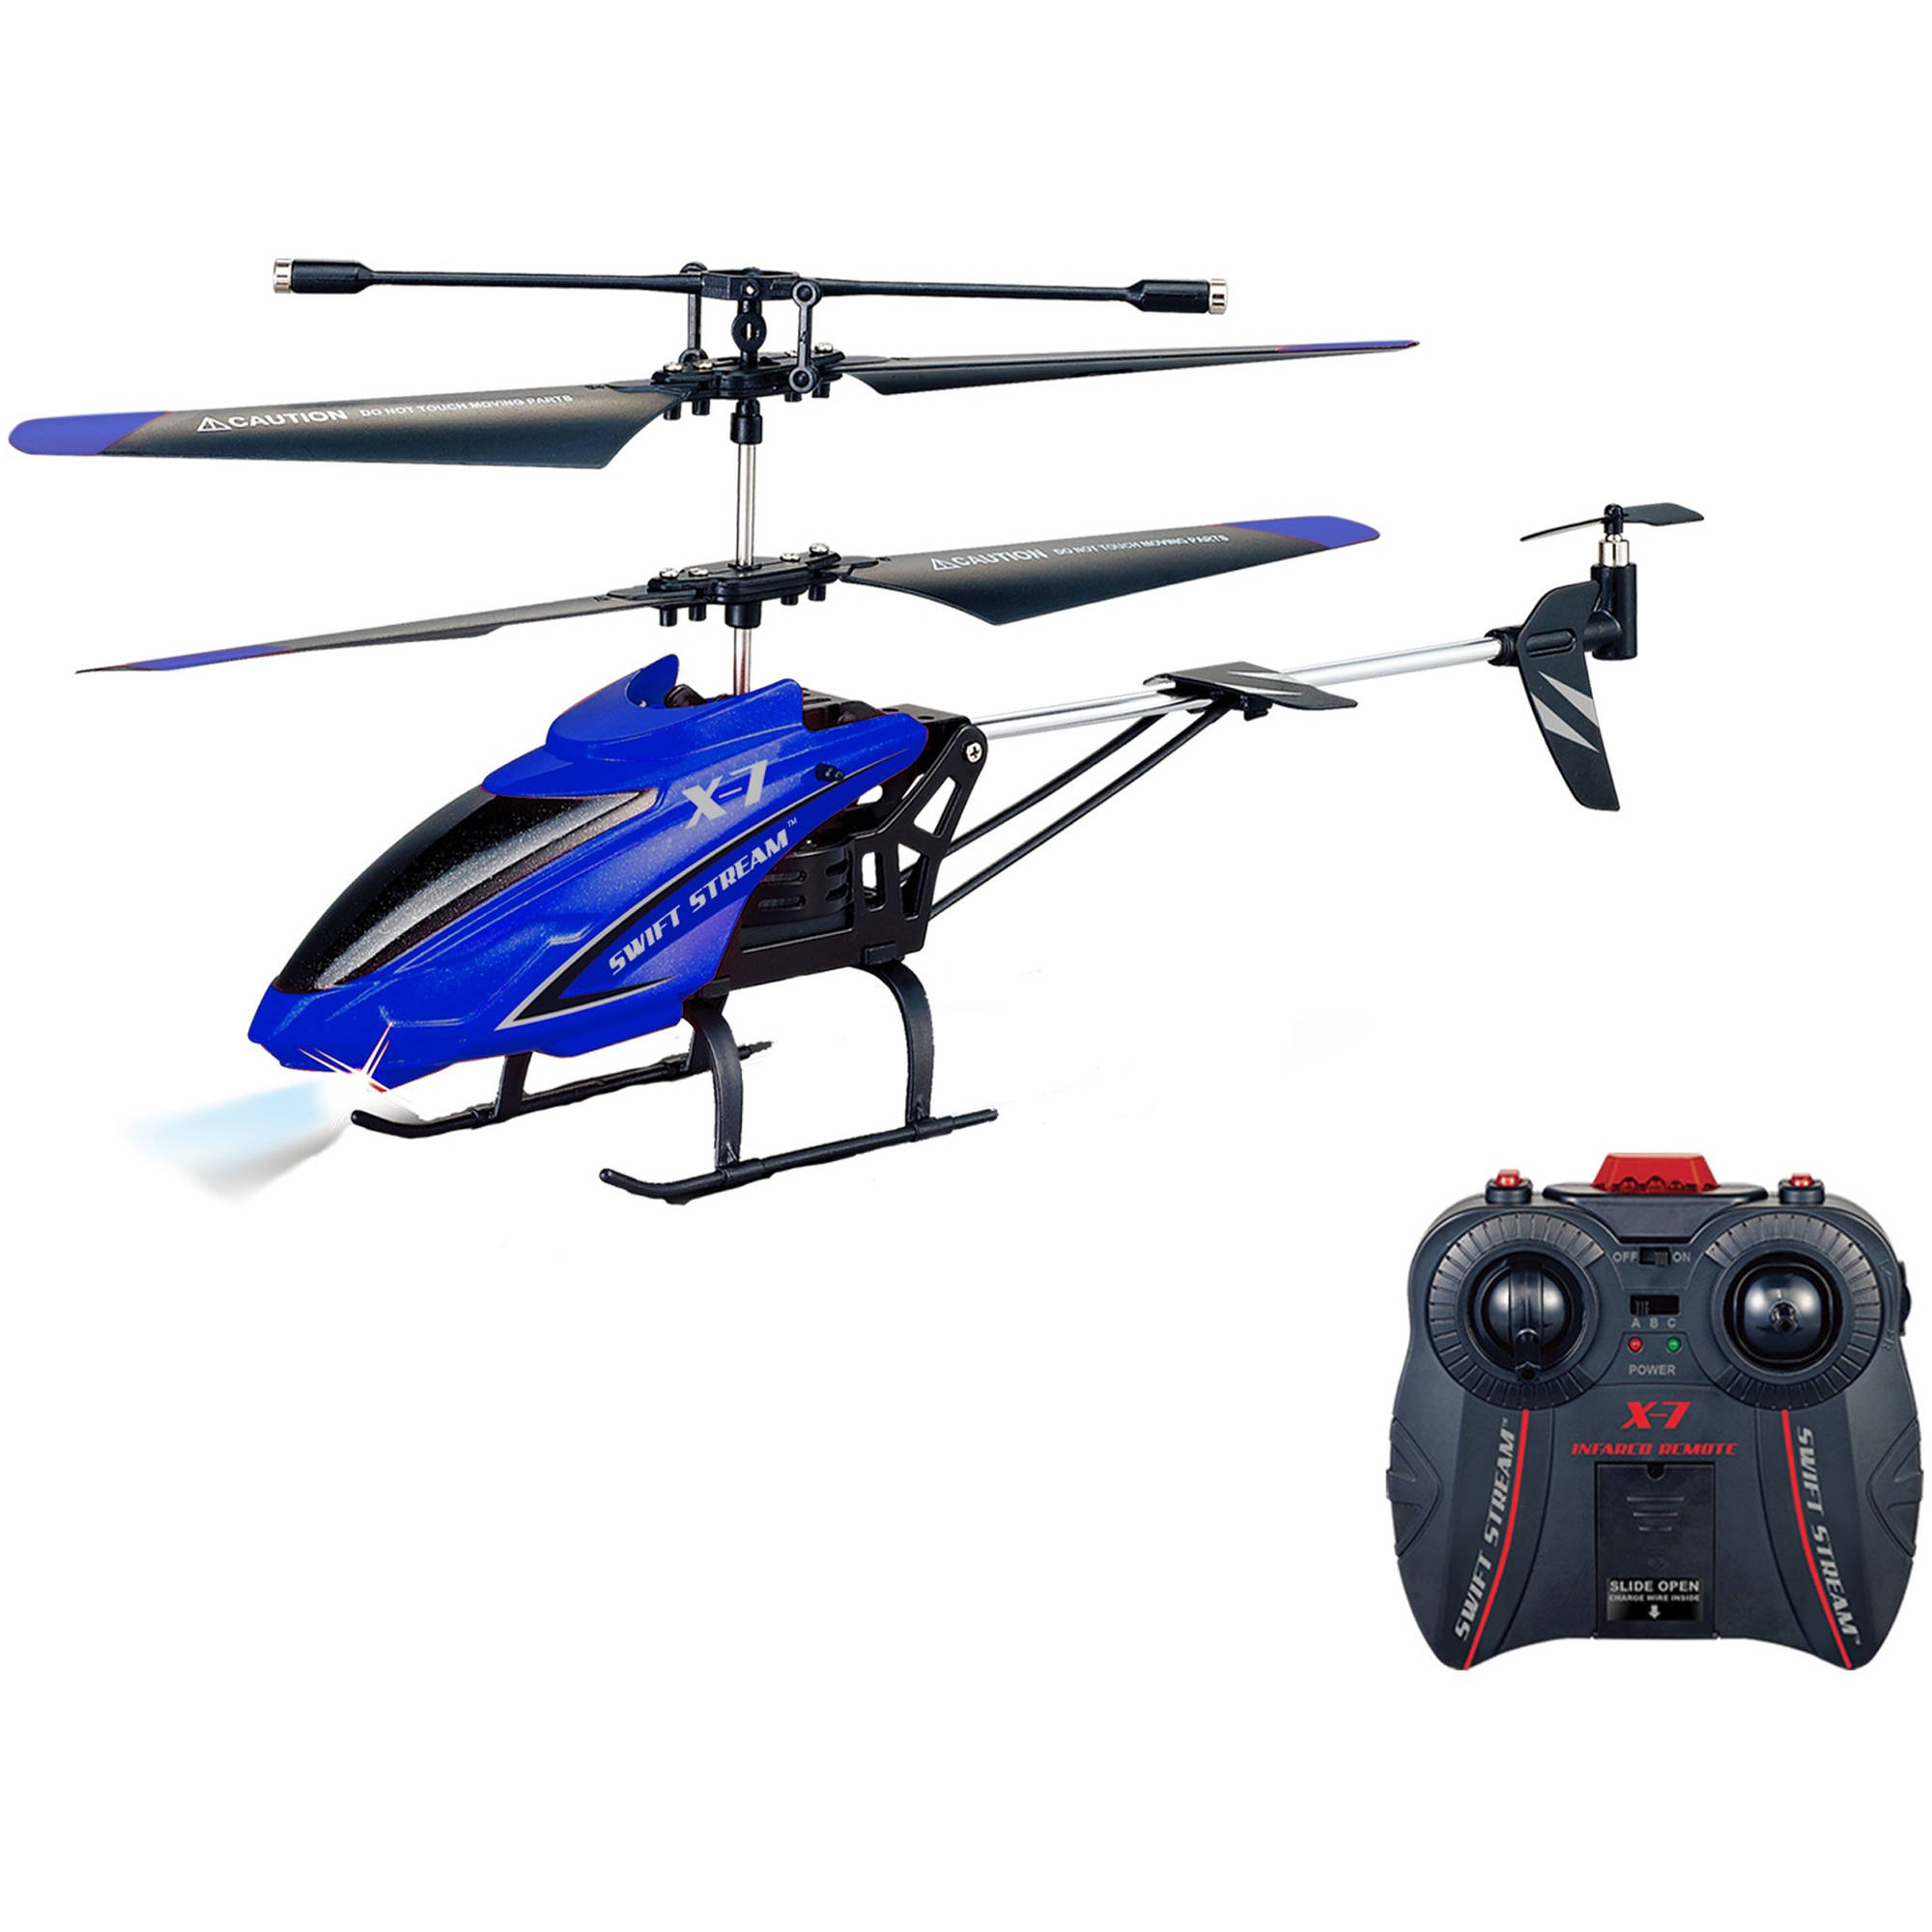 "Swift Stream X-7 Remote Control 9"" Helicopter, Blue"